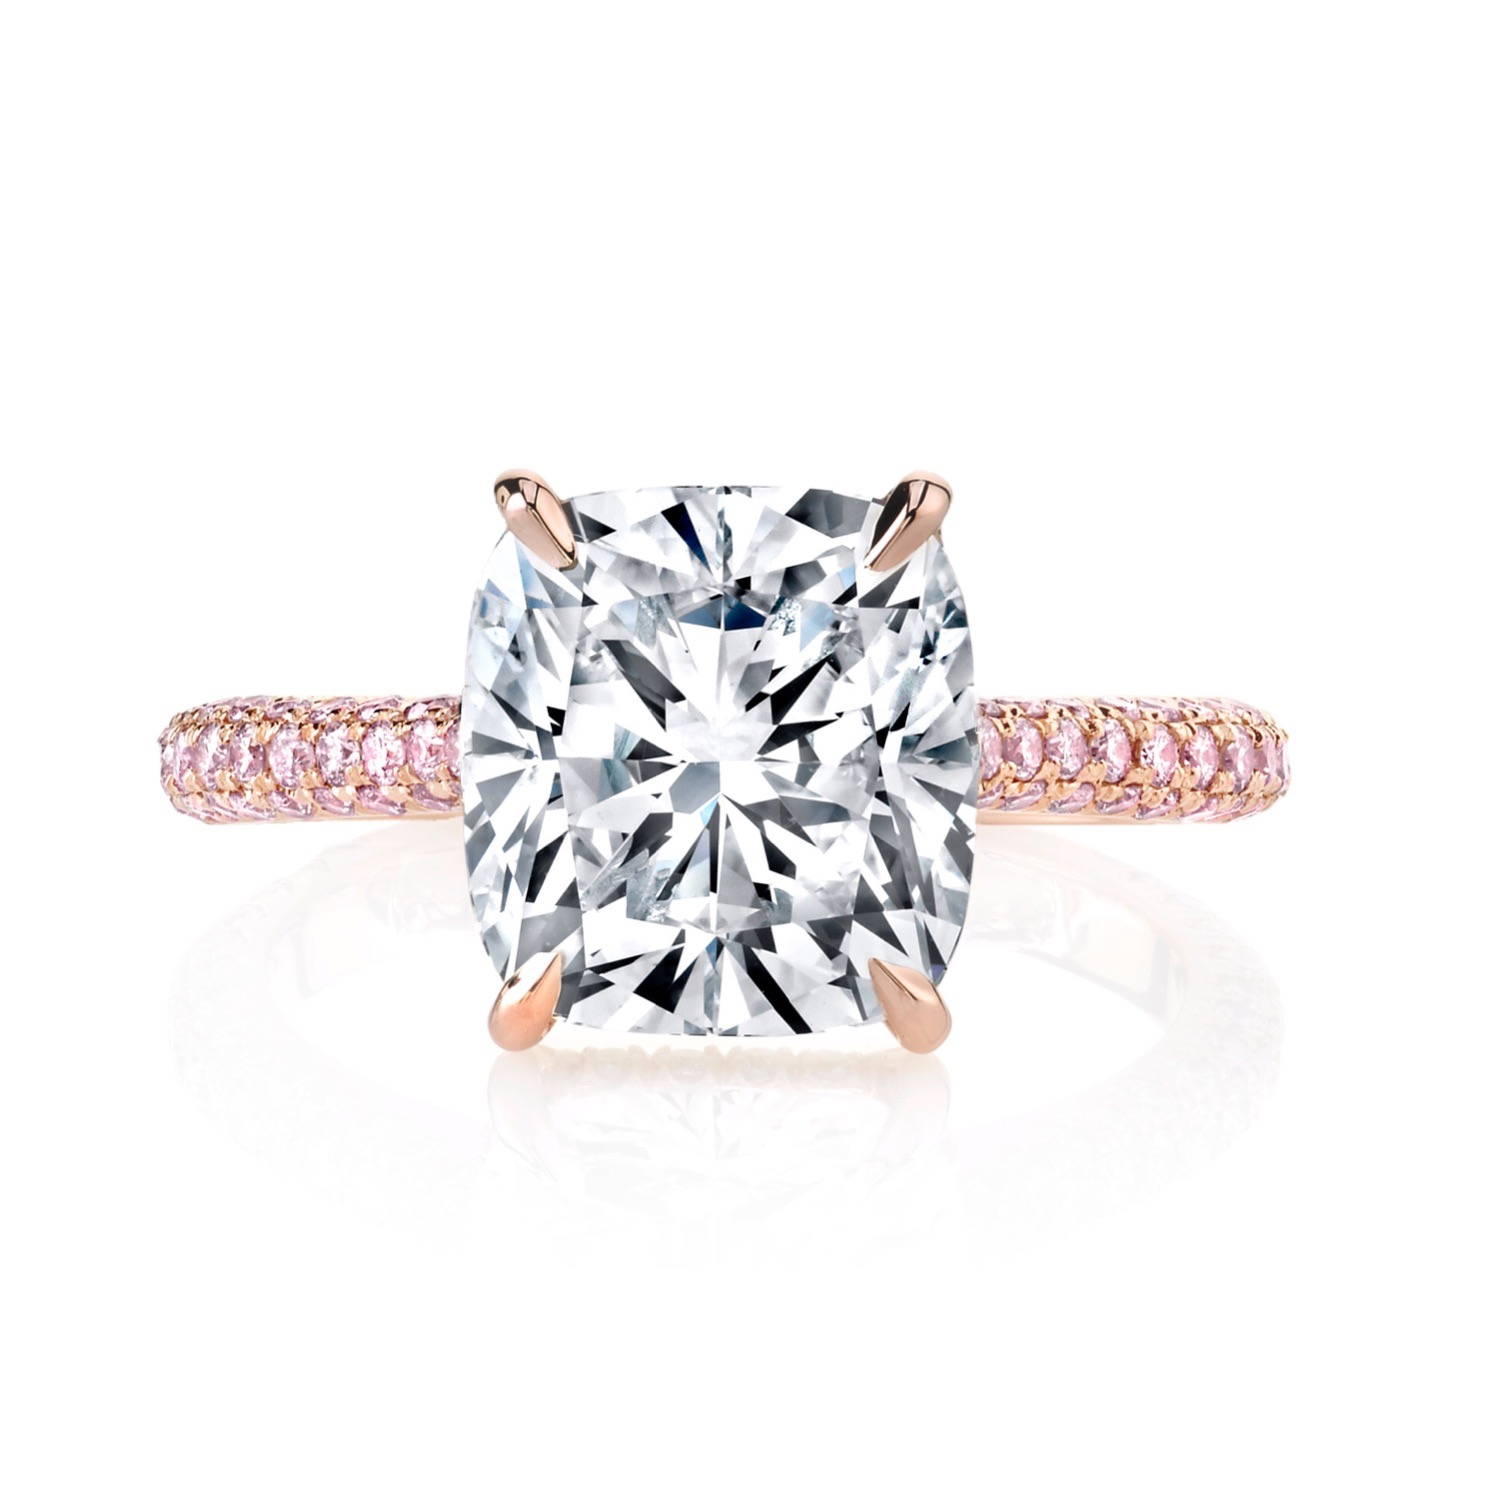 Diamond Solitaire Engagement ring cushion cut diamond